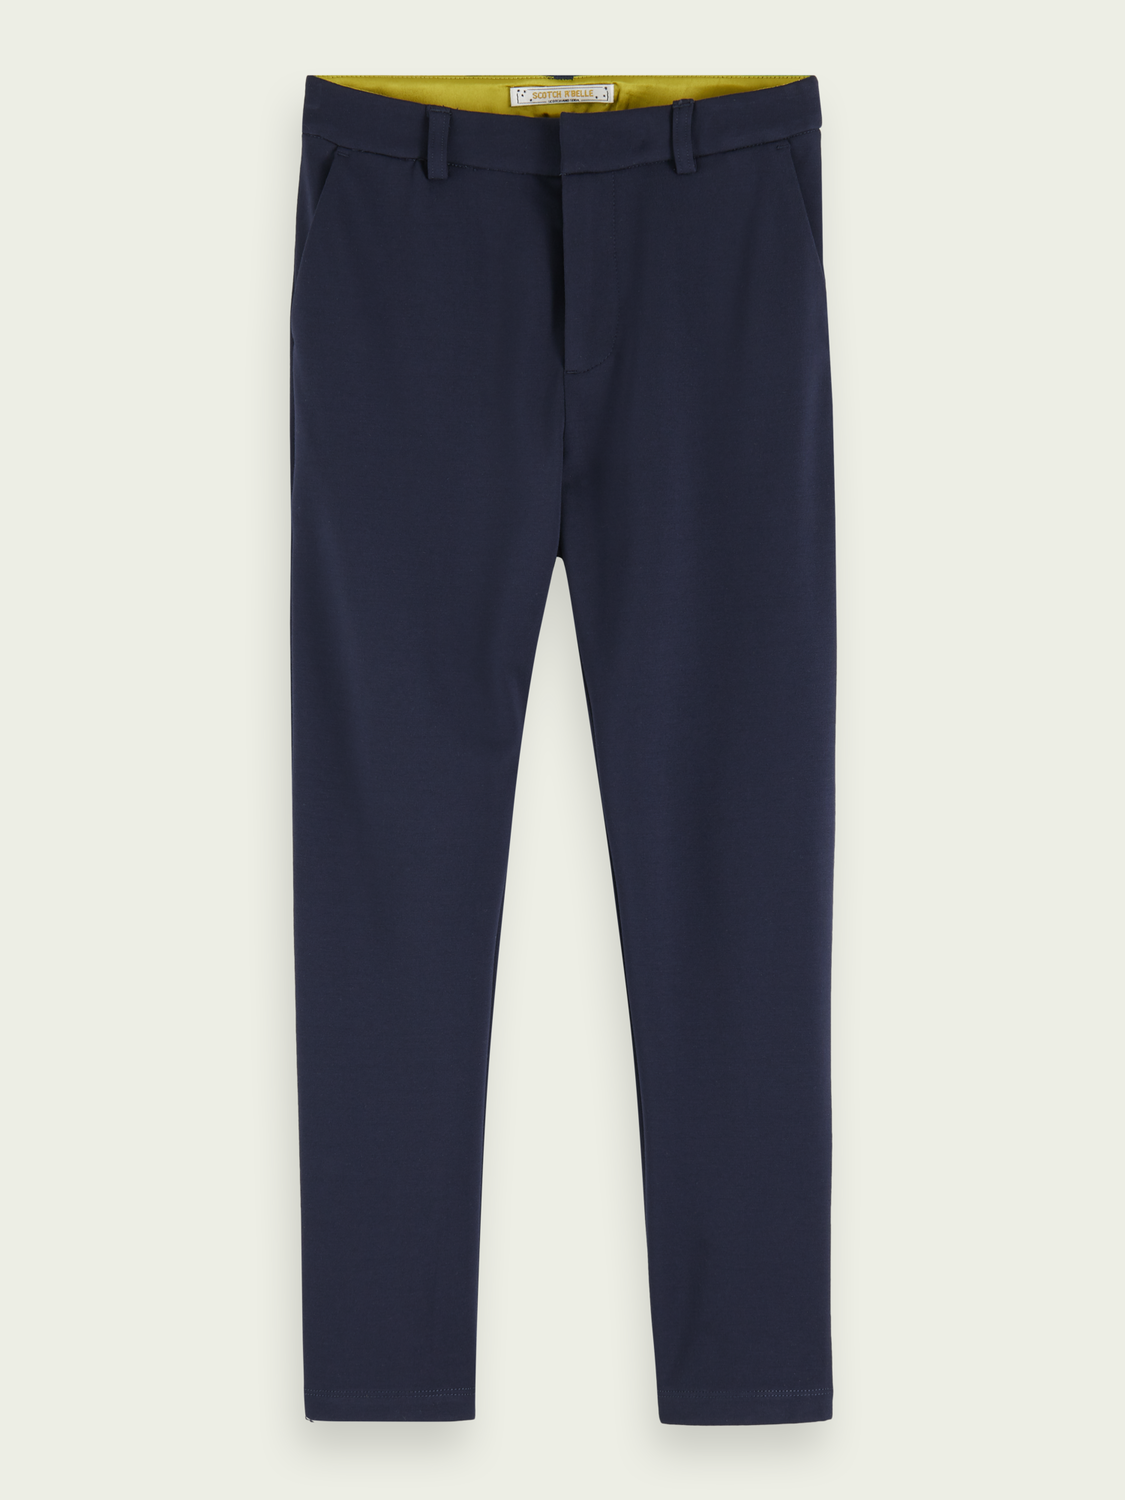 Kids Mid-rise slim fit tailored chinos